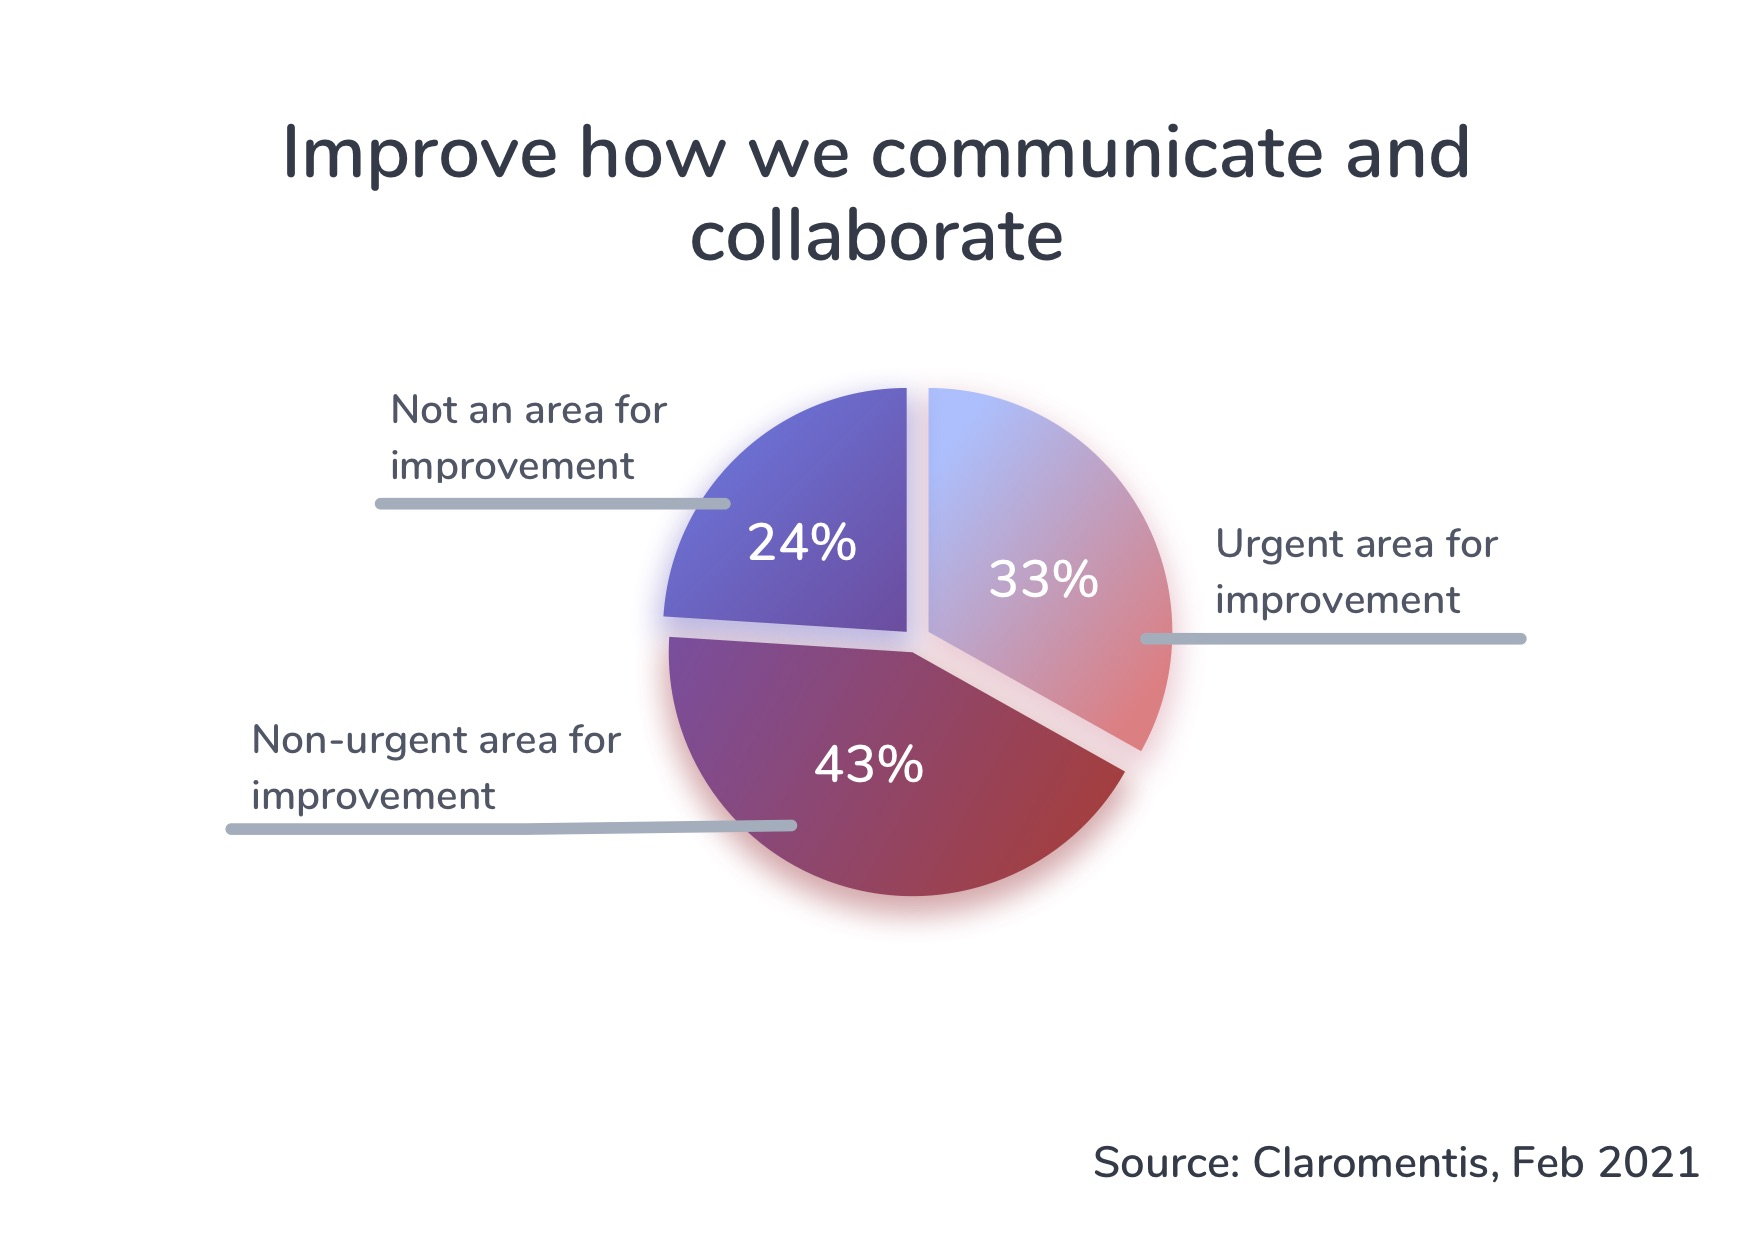 563_Improve-how-we-communicate-and-collaborate-Download-no-logo